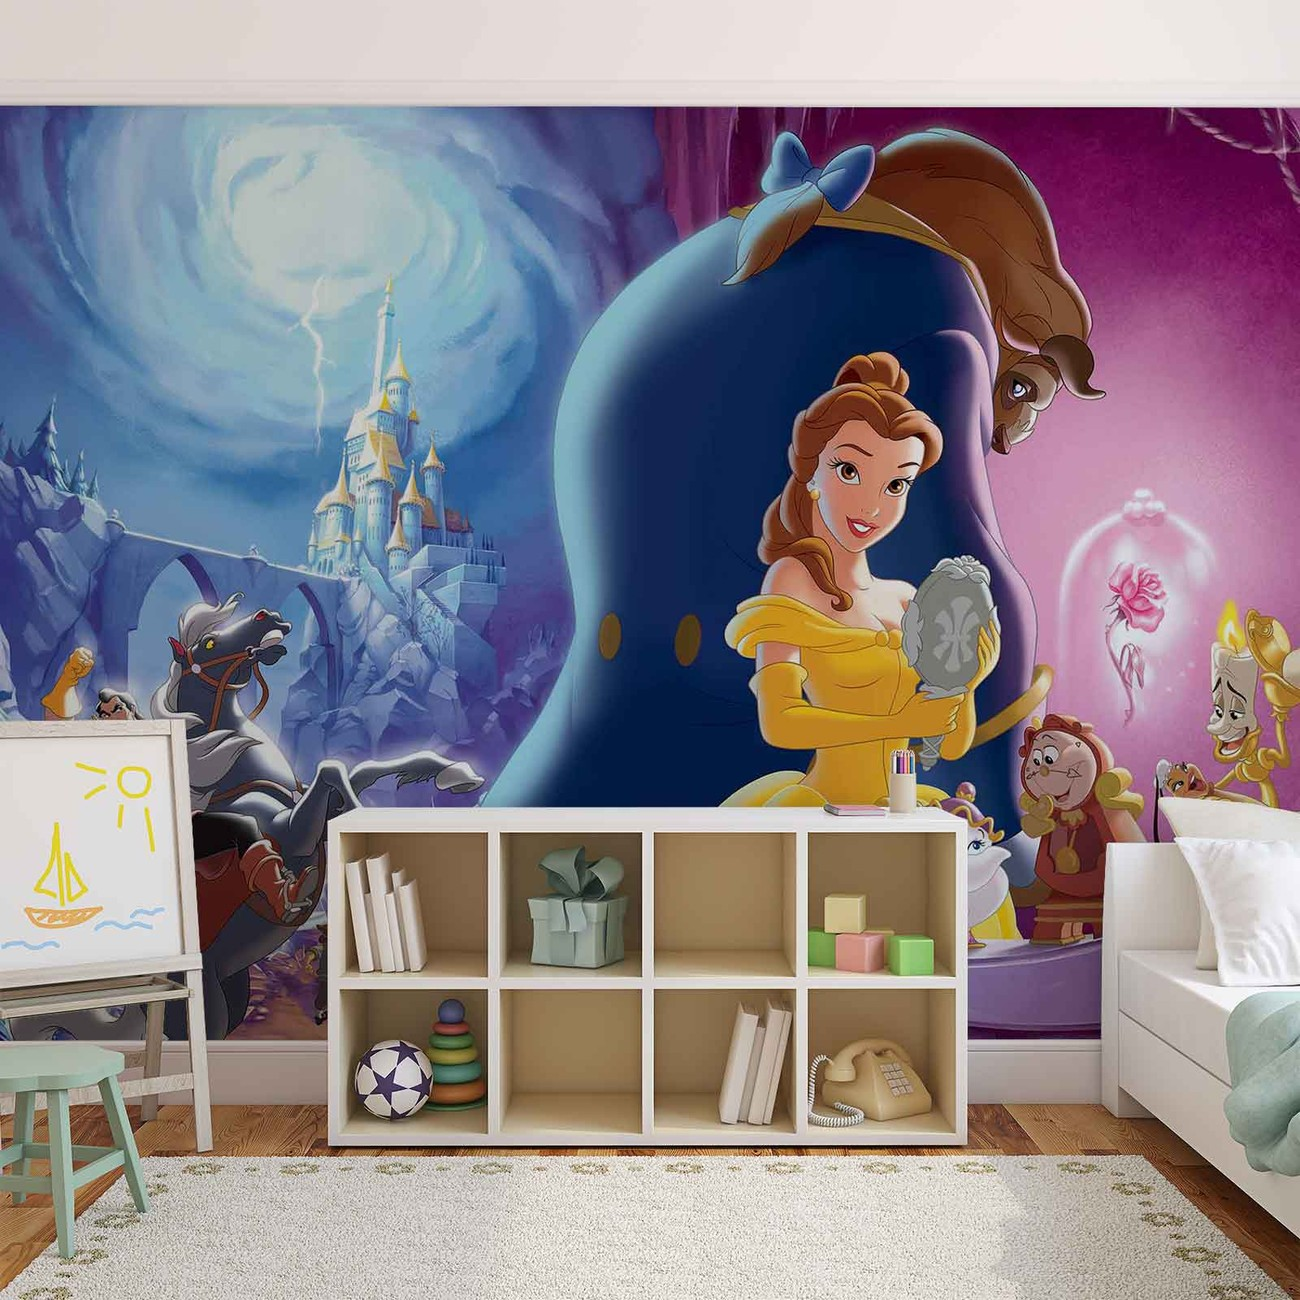 Disney princesses belle beauty beast wall paper mural for Disney princess wall mural tesco